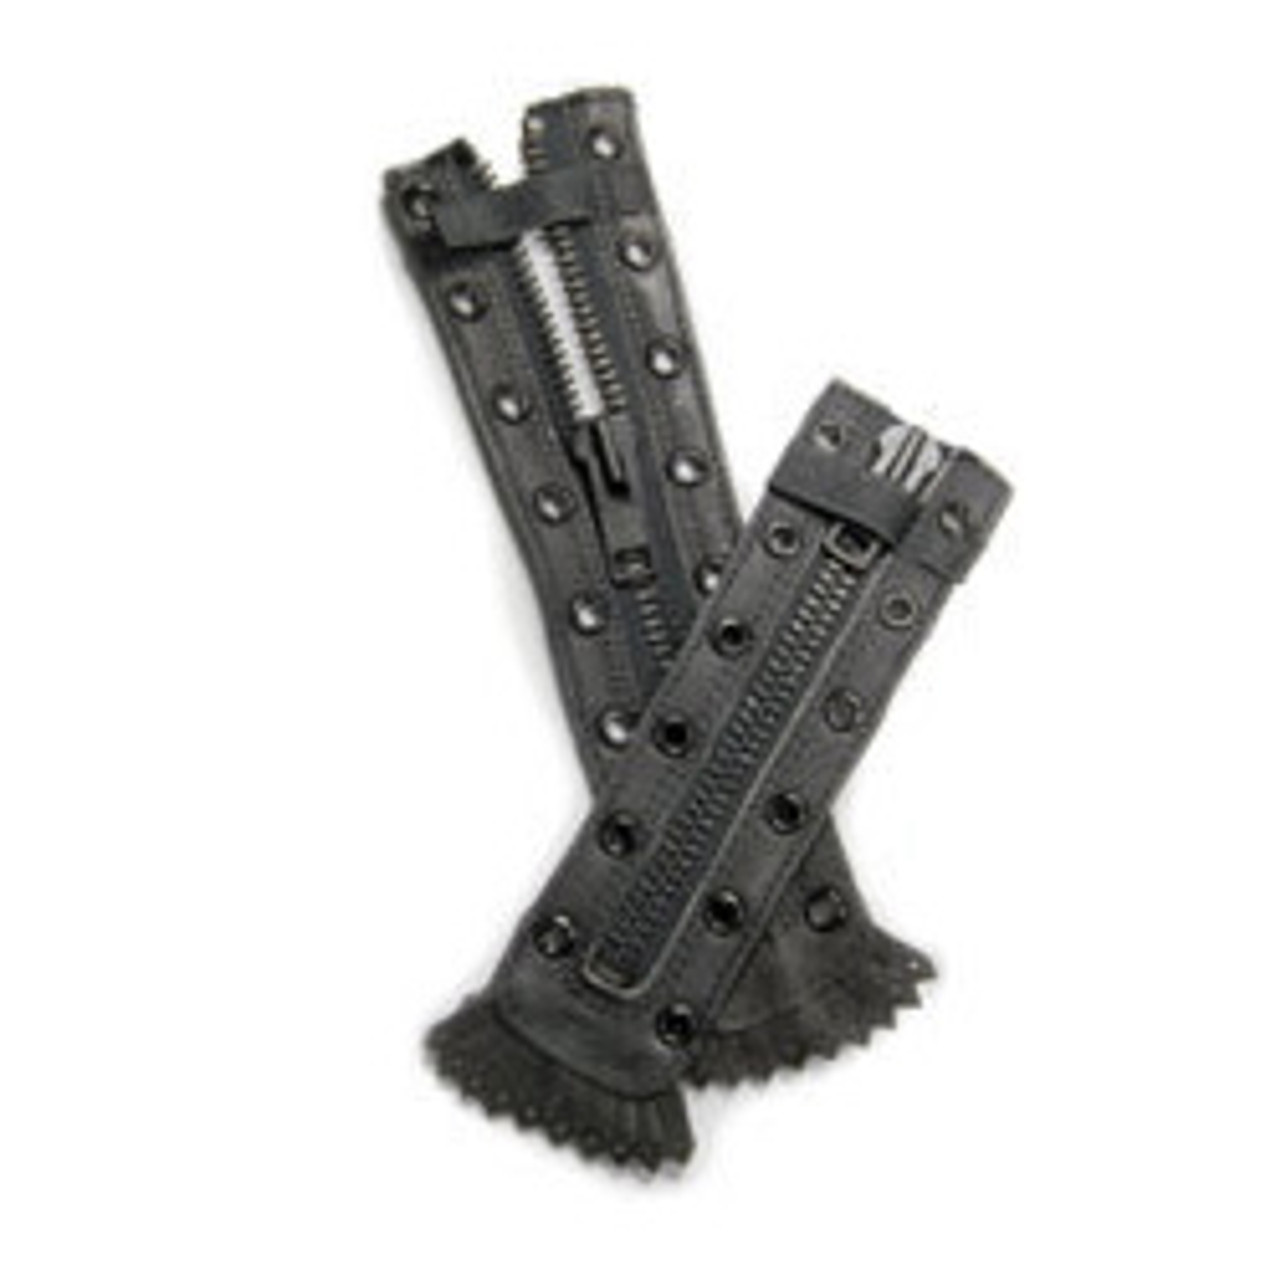 Pro Warrington Replacement Zippers for Station Boot Model 3003 (pair) 9 or 10 Hole